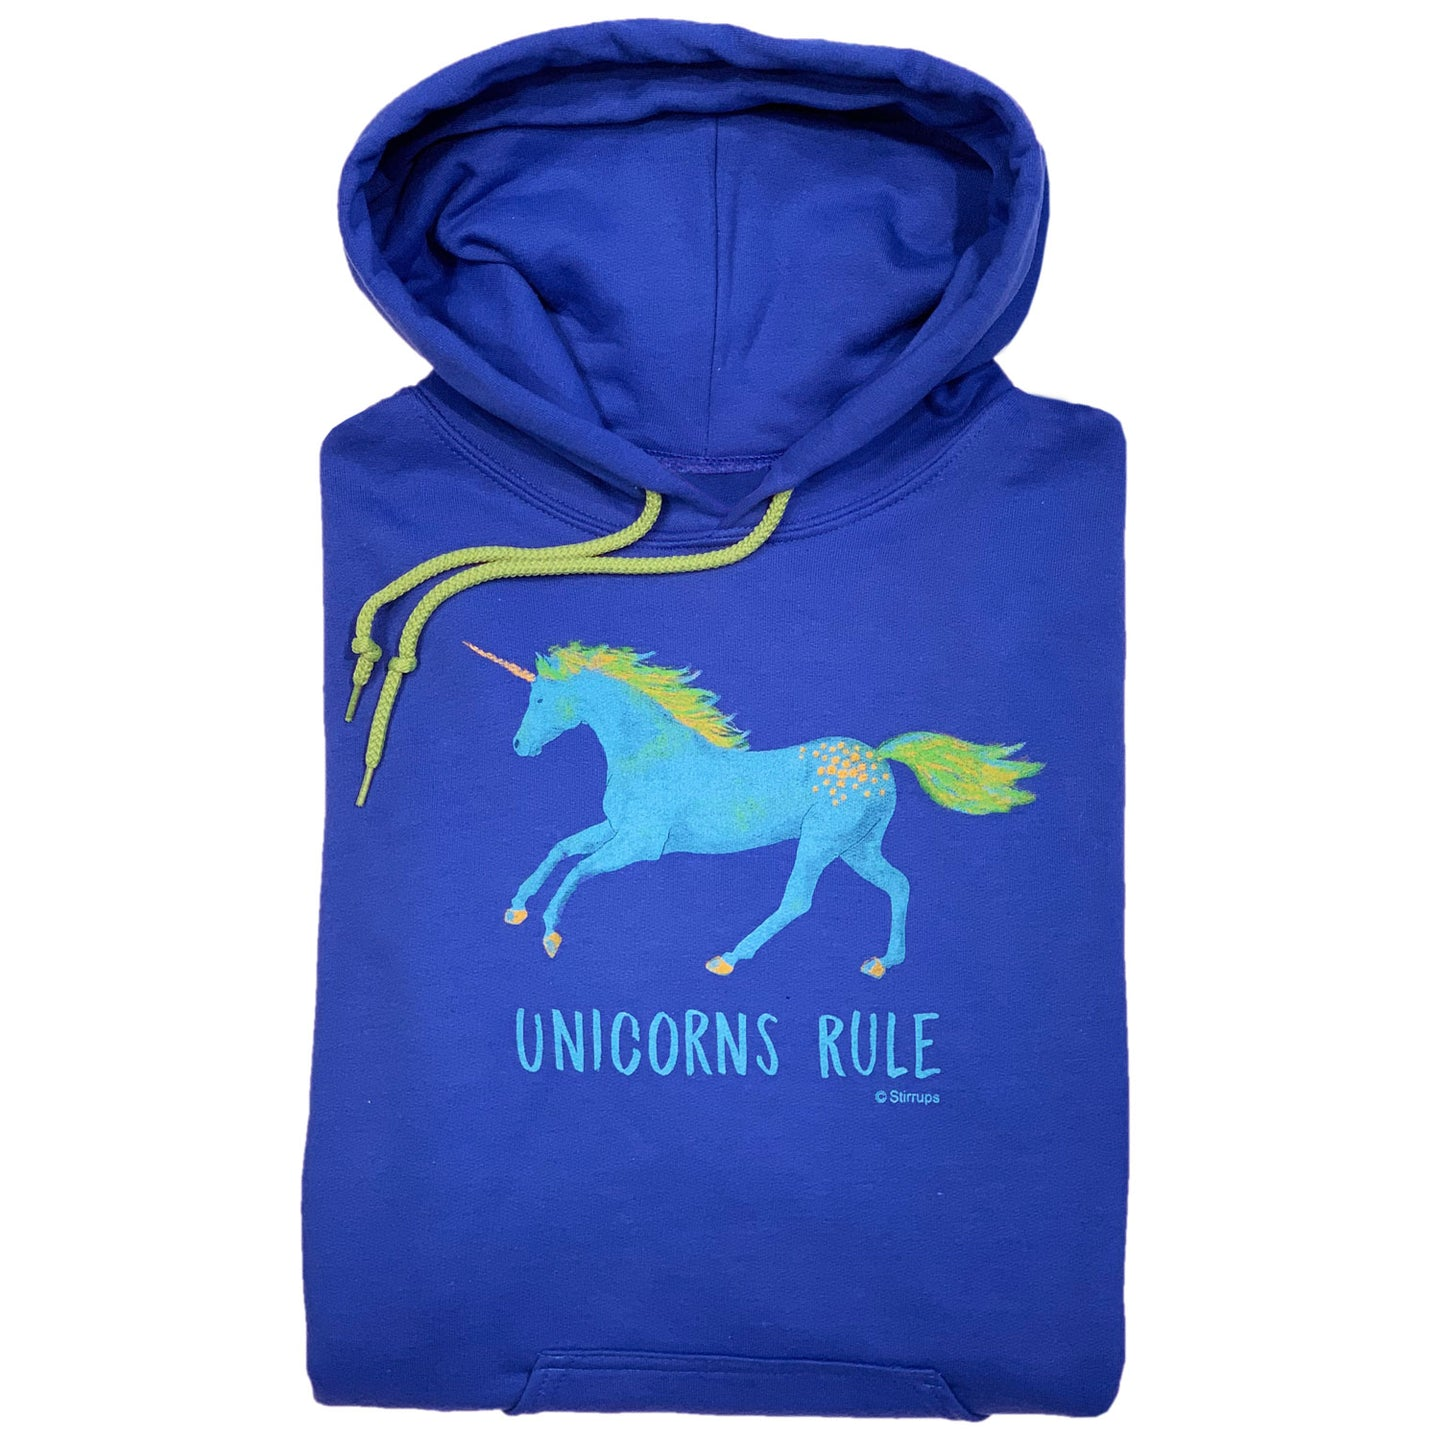 Unicorns Rule Adult Hoodie 19517